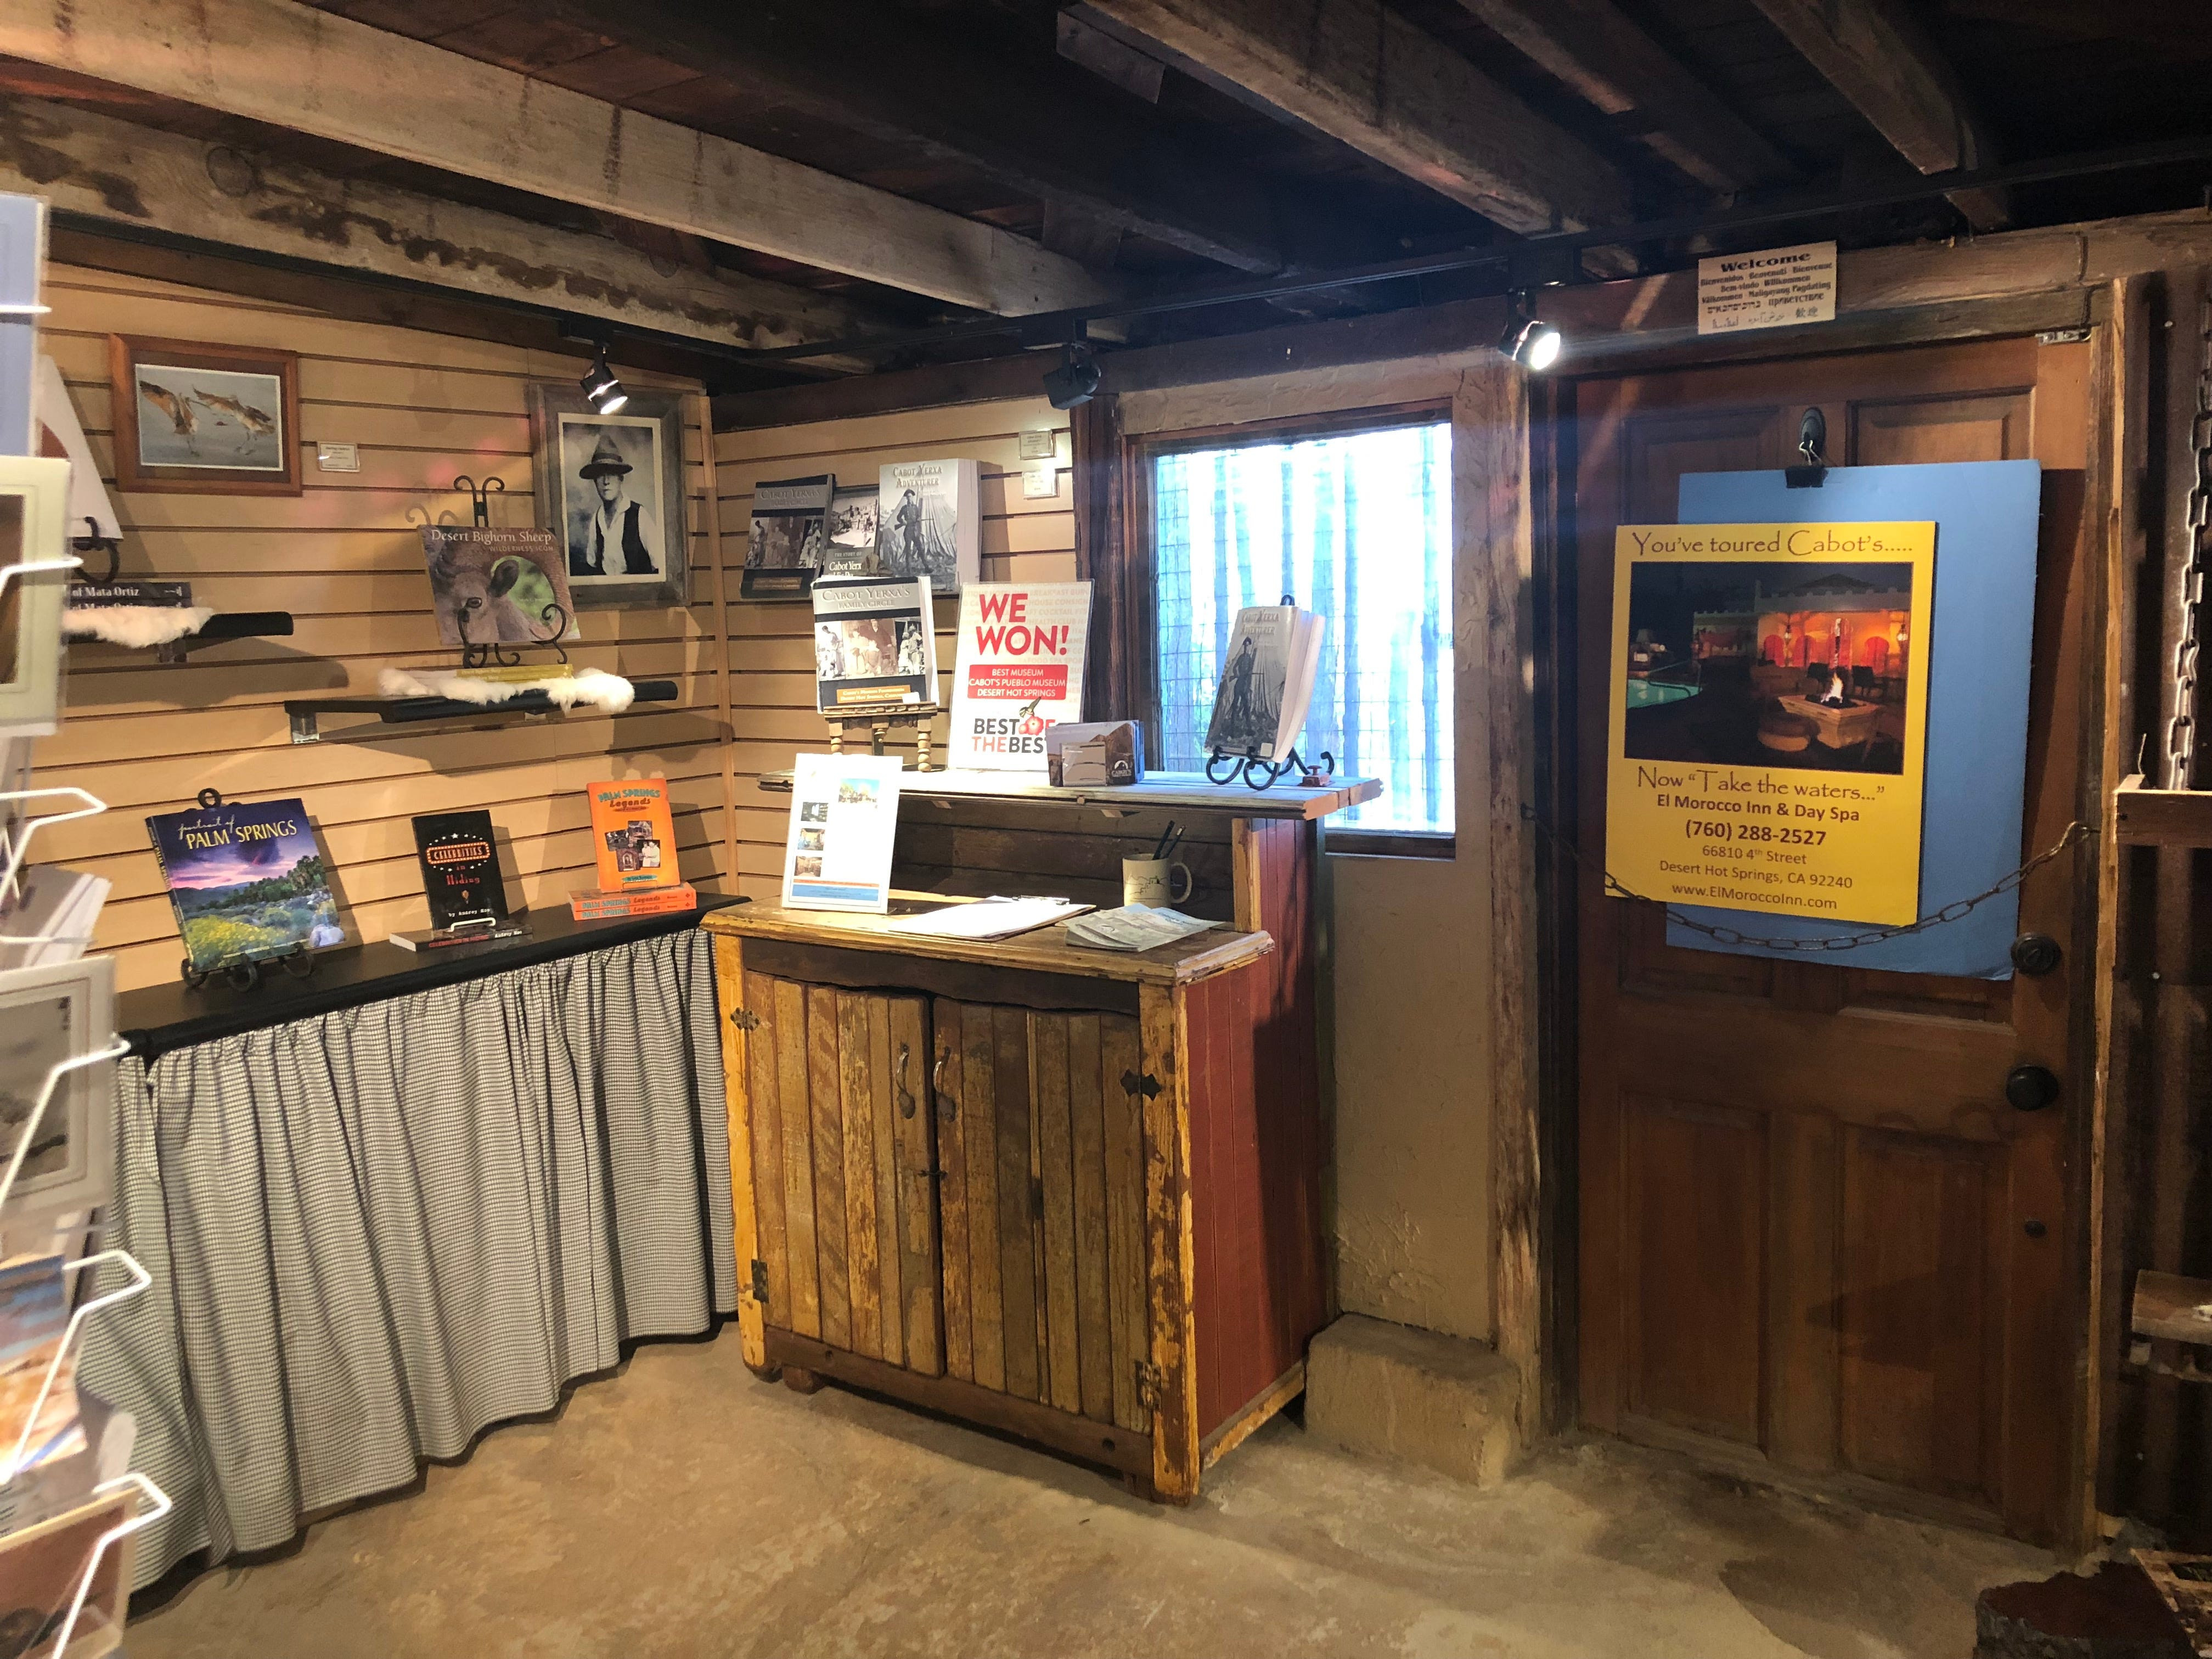 The gift shop at Cabot's Pueblo Museum in Desert Hot Springs.